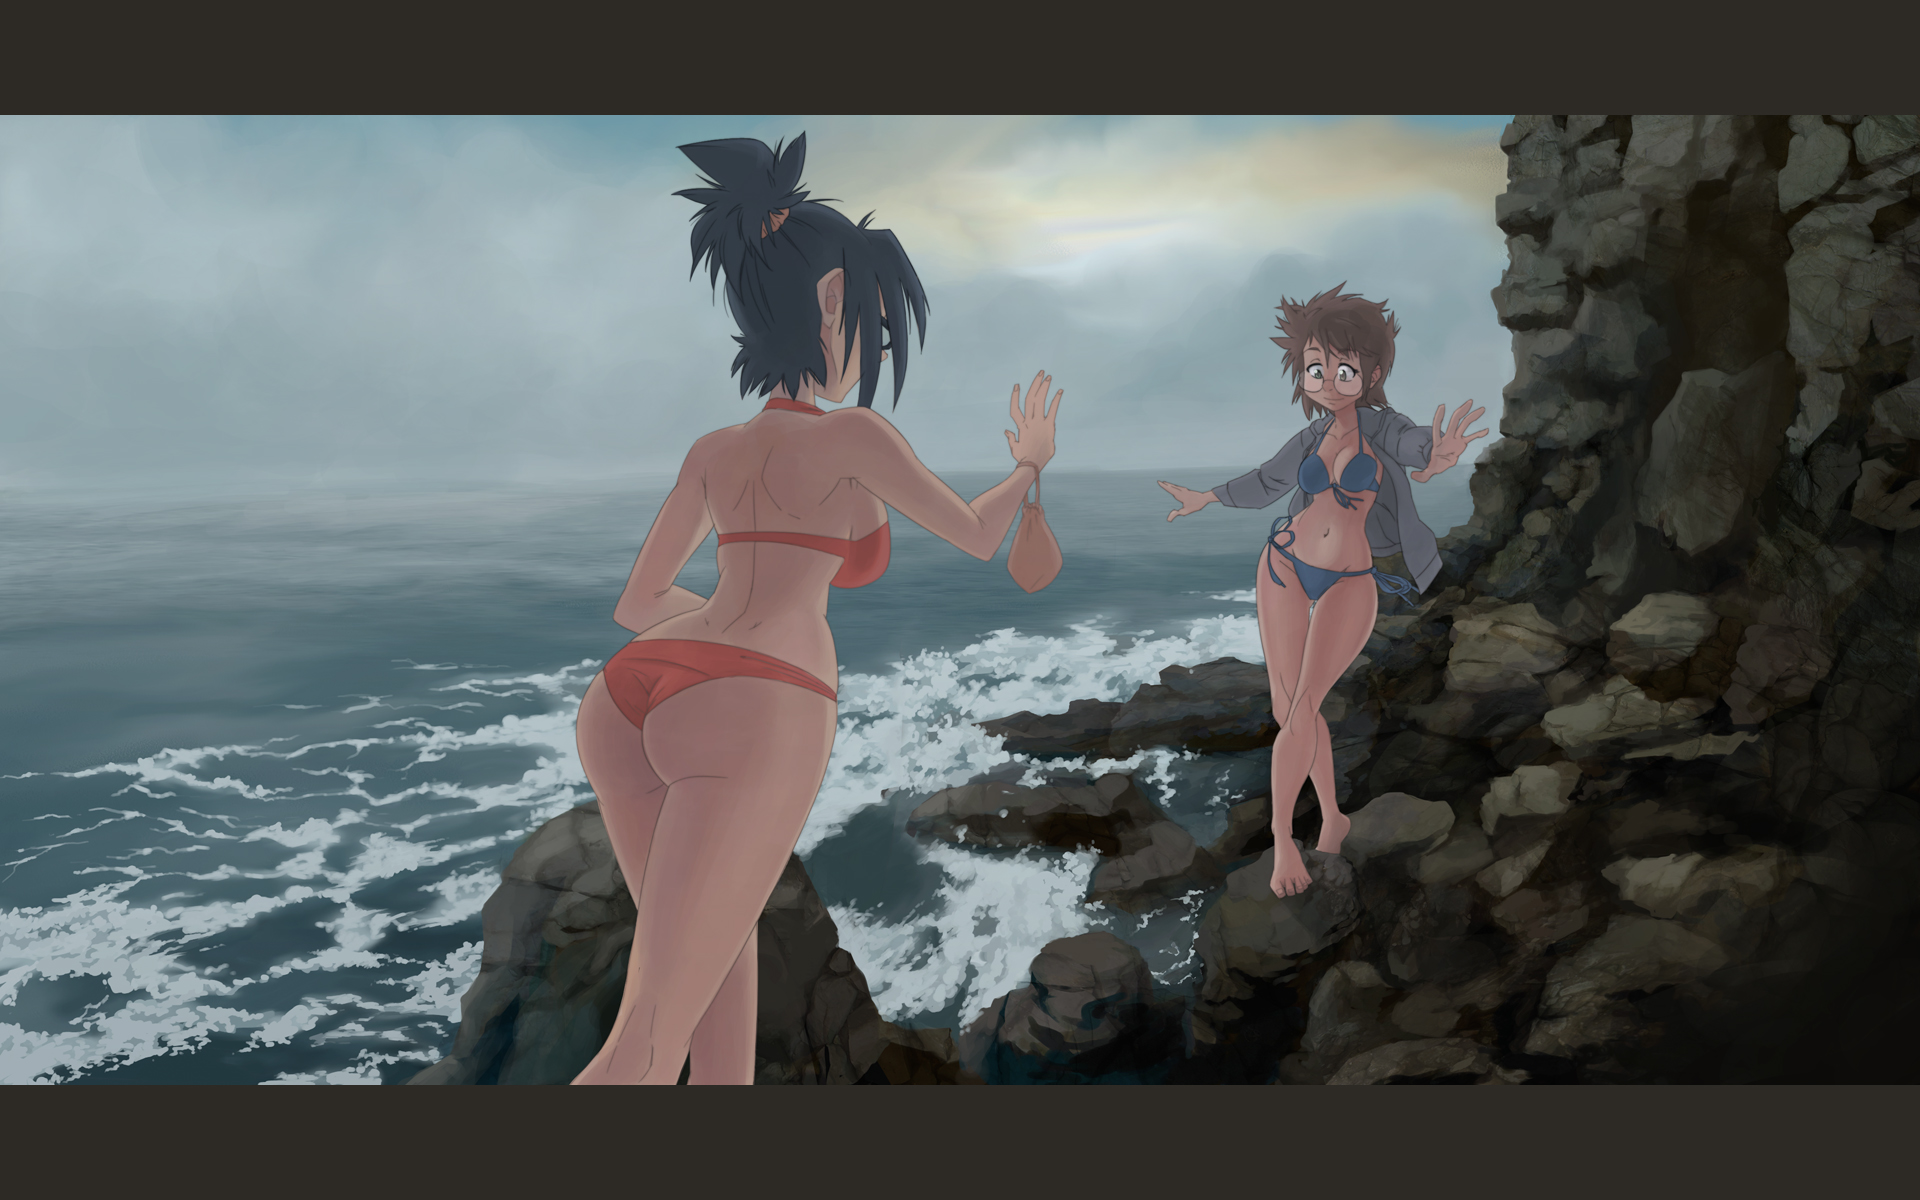 nova and Erika at the beach 02 - REDUX by will-Ruzicka